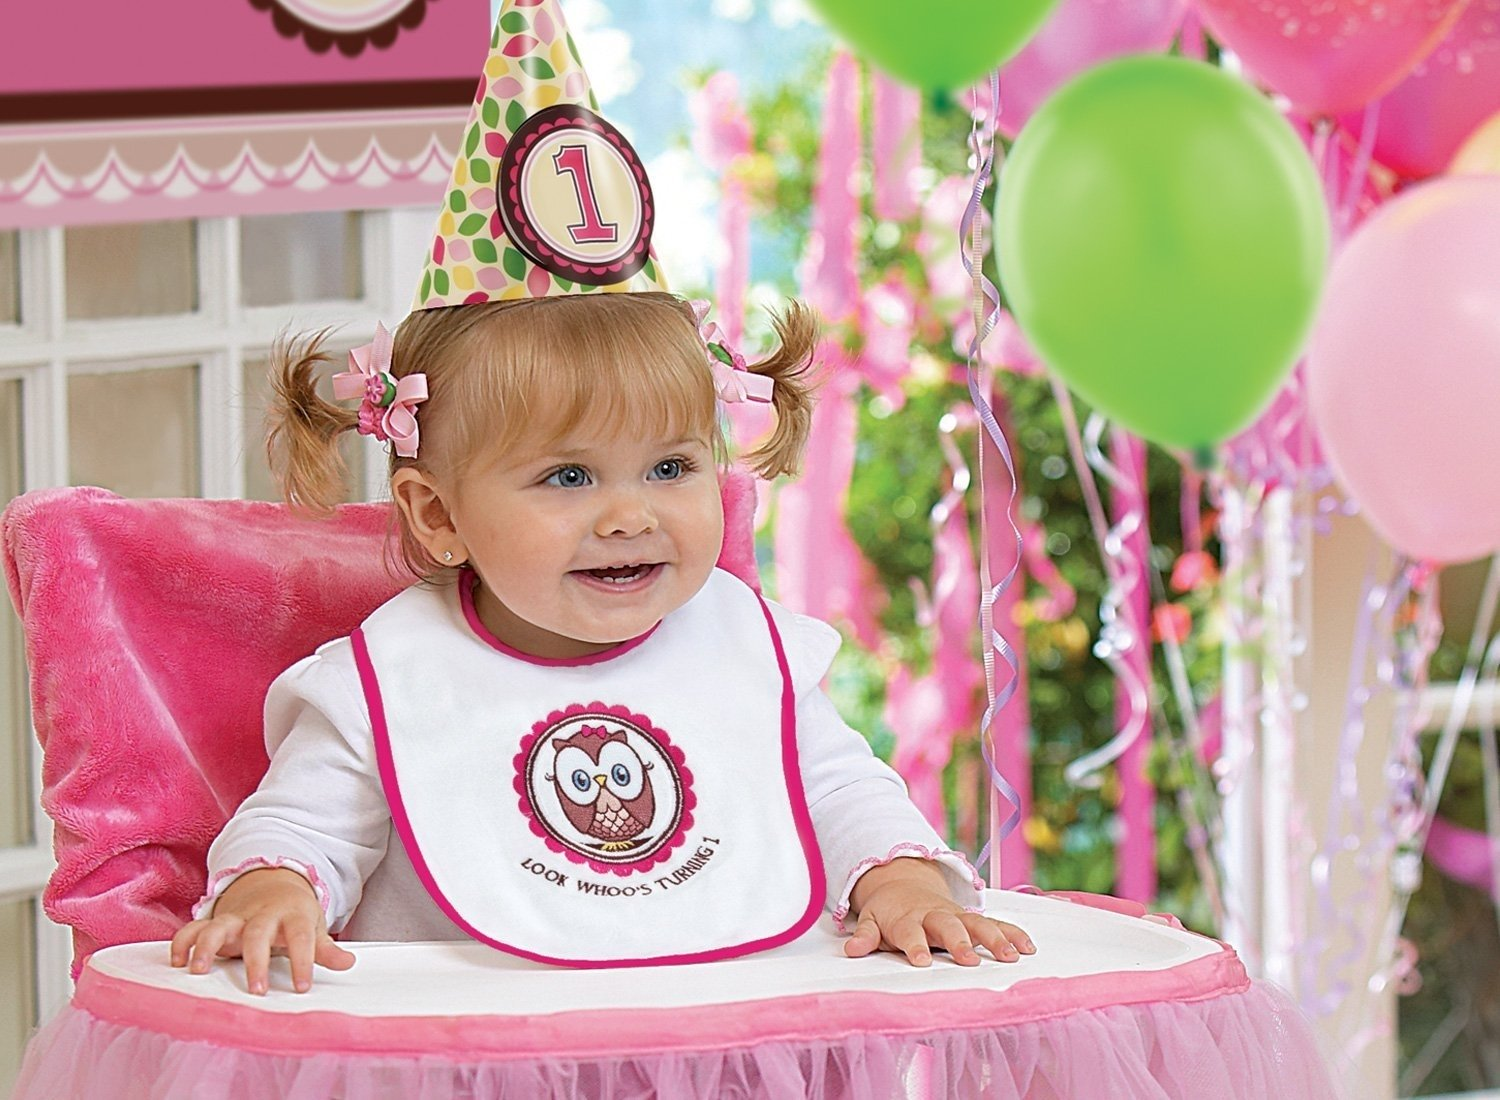 10 Fabulous 1St Birthday Photo Shoot Ideas fun ideas for your baby girls first birthday photo shoot 2020